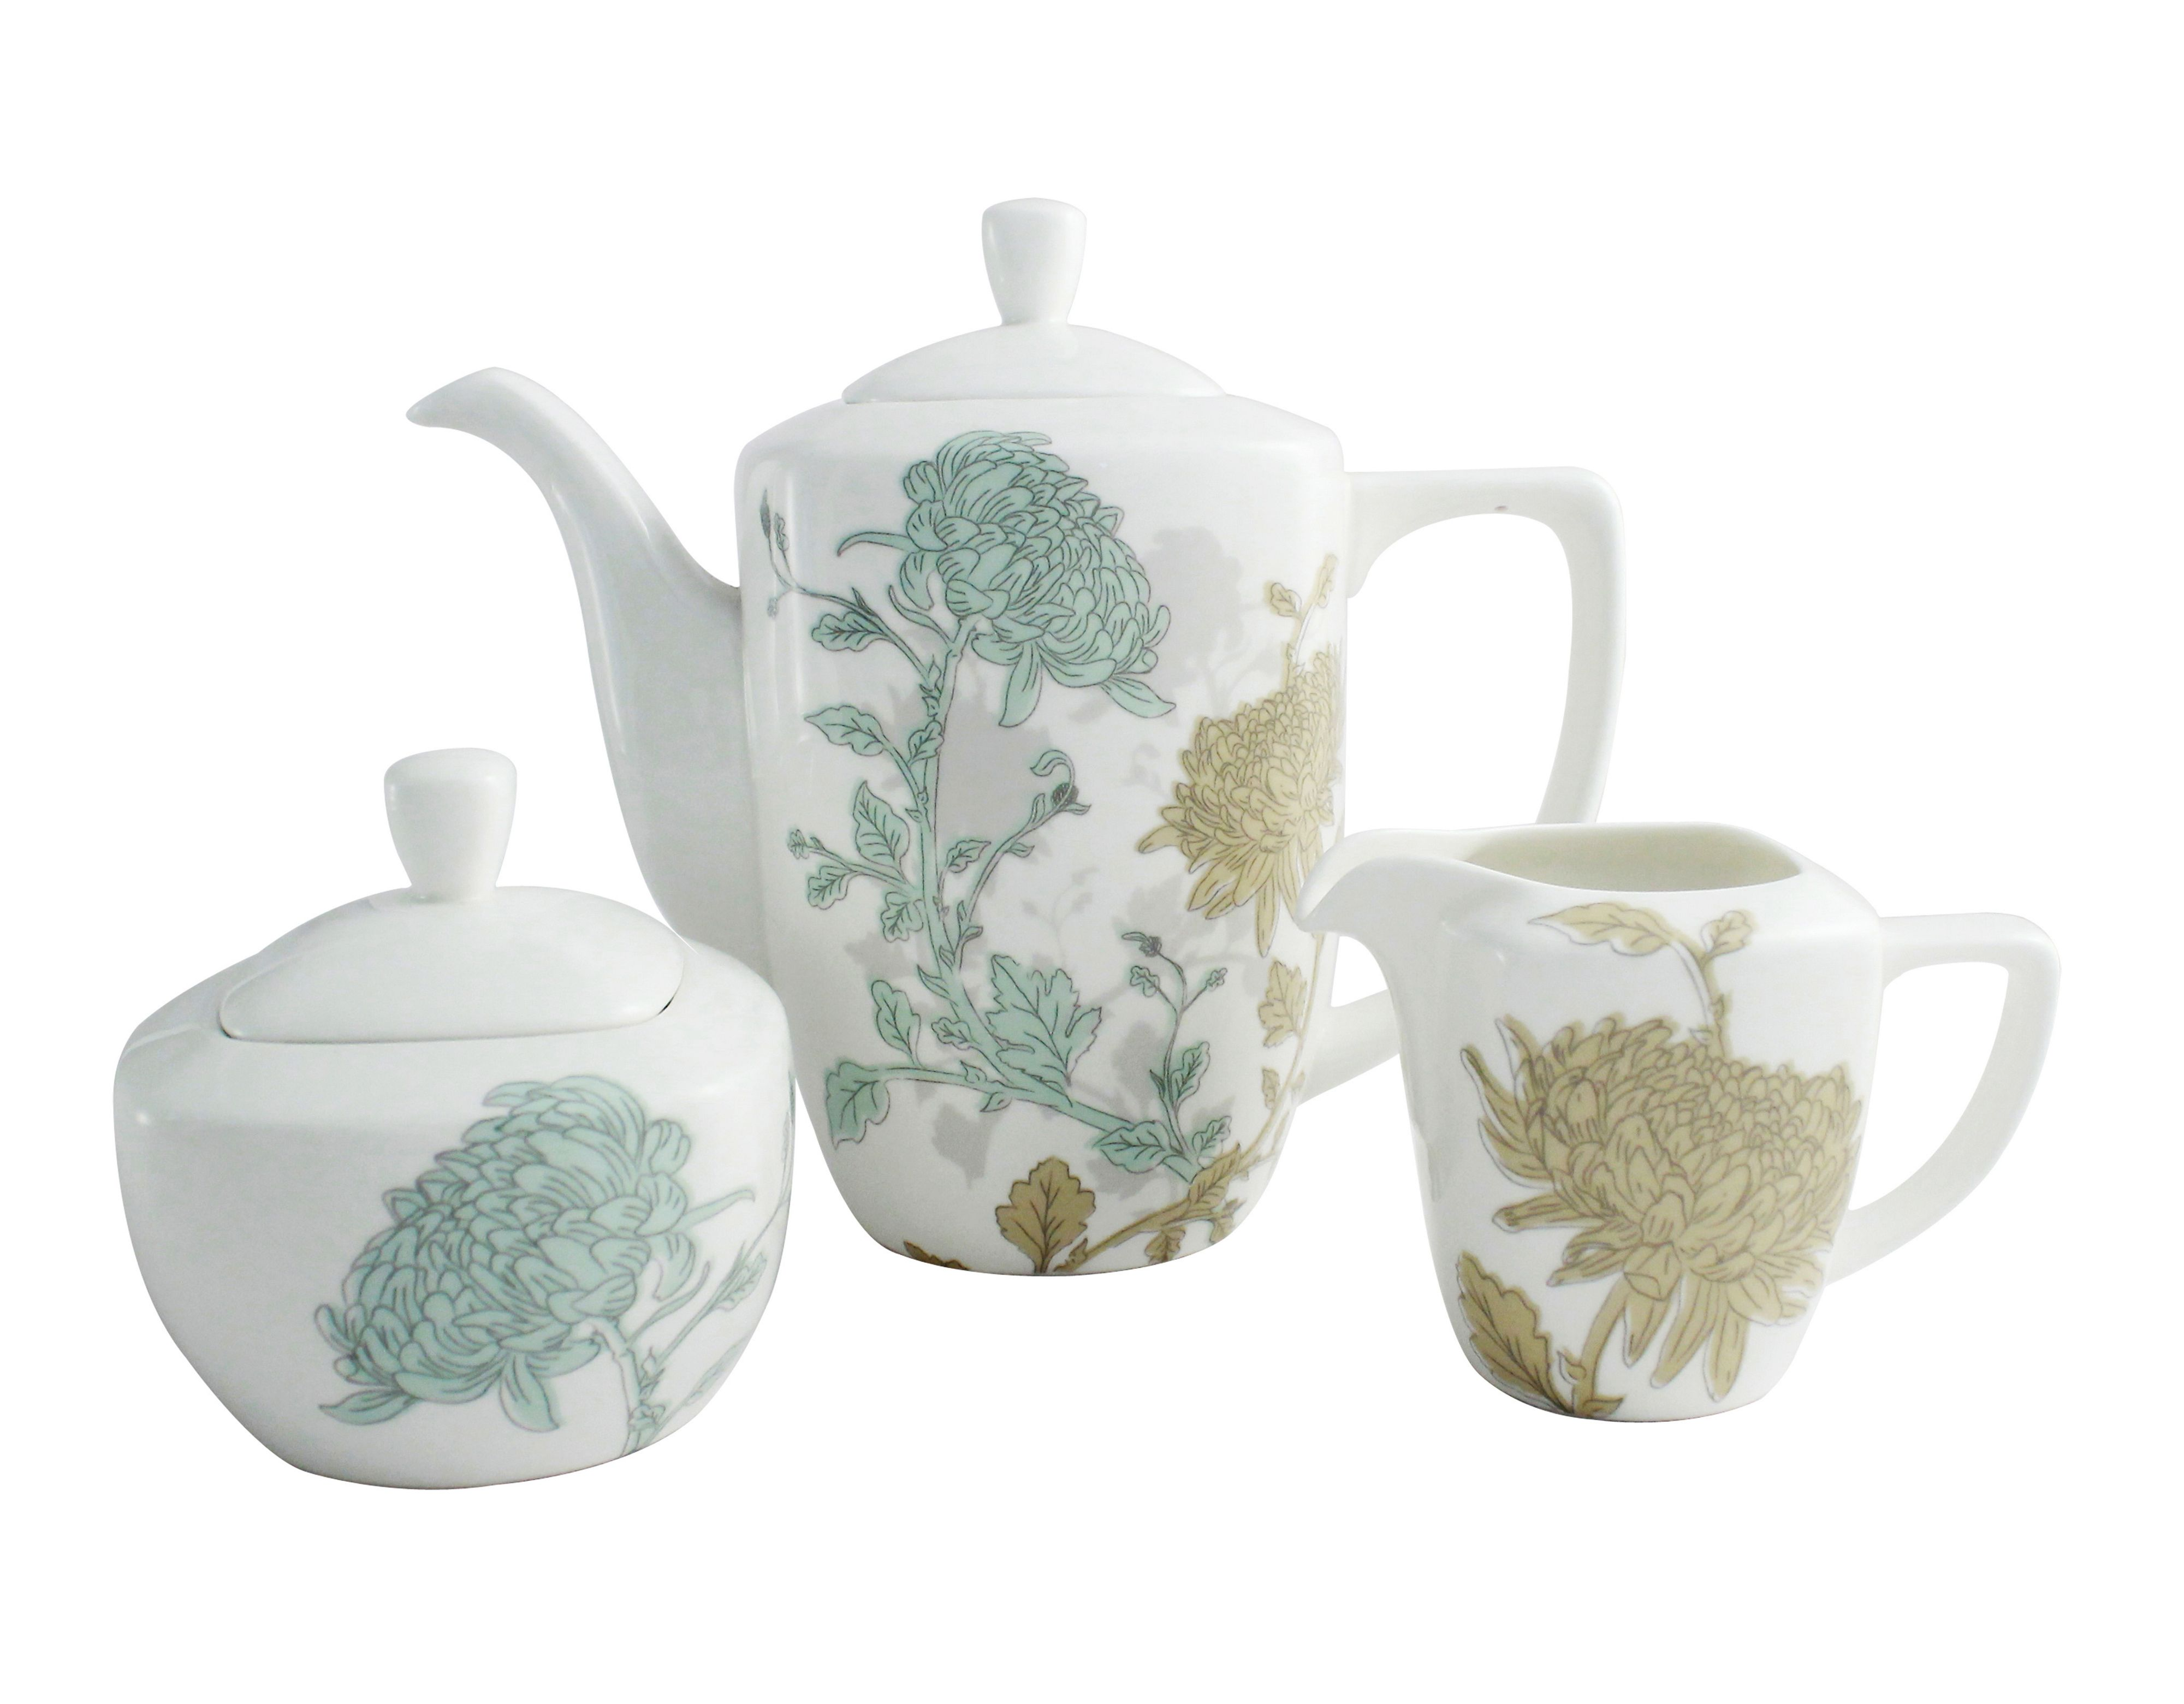 Aynsley Aynsley Cambridge teapot, sugar and cream set